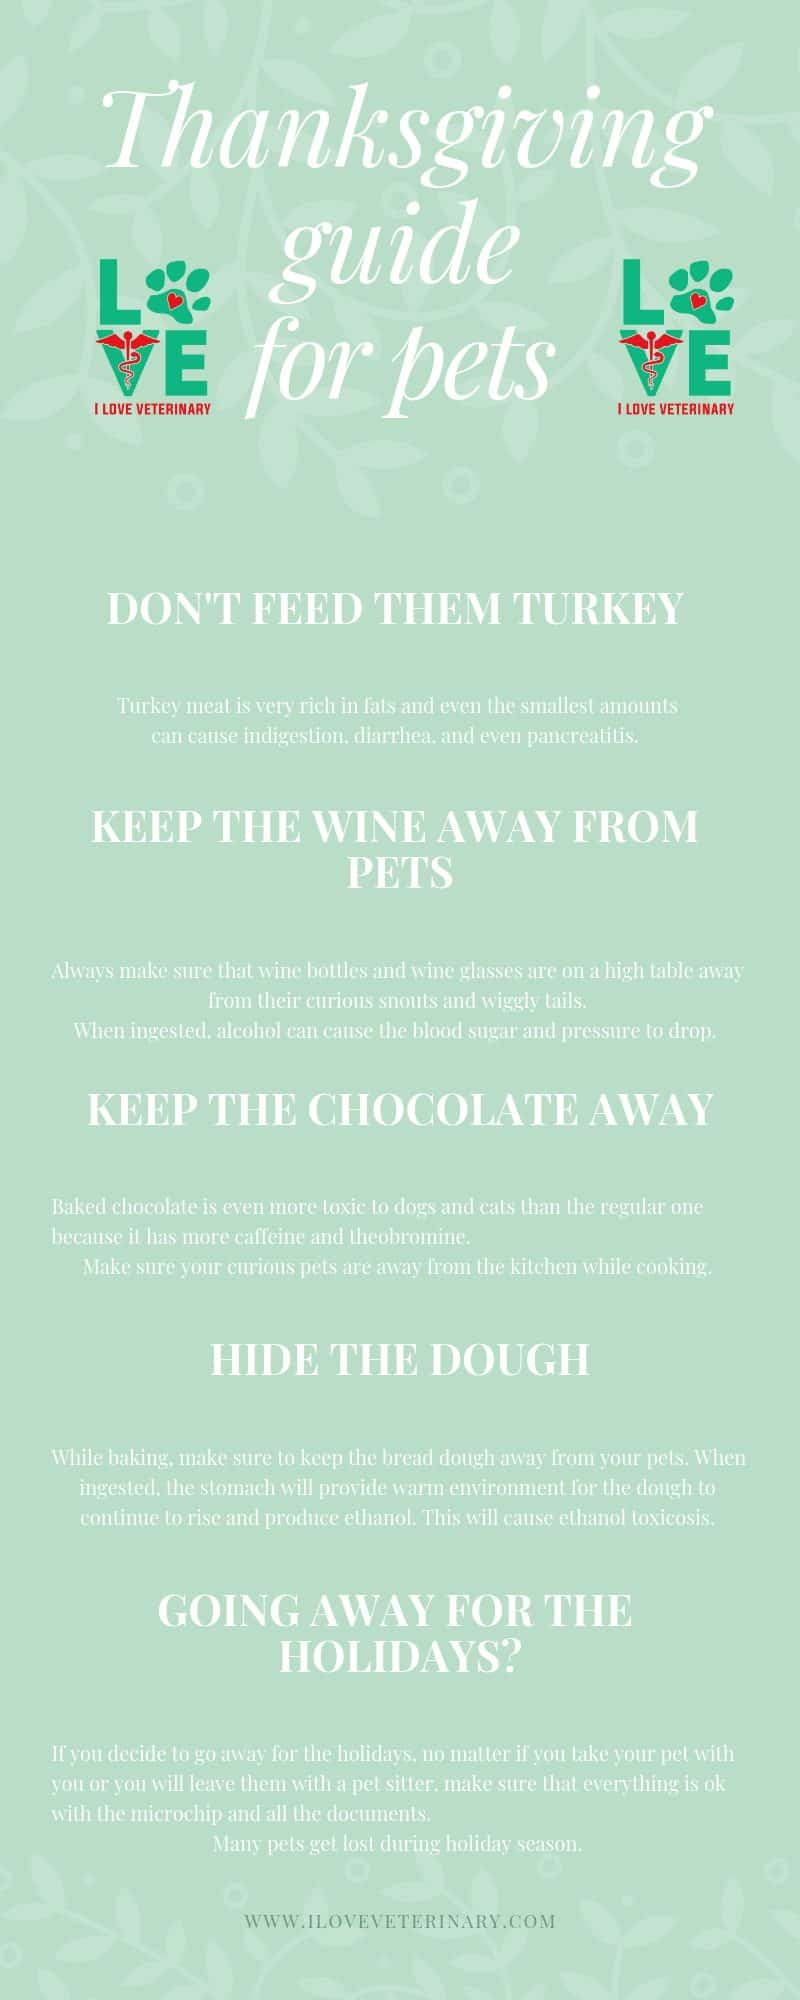 holiday, thanksgiving, pets, Thanksgiving guide for pets